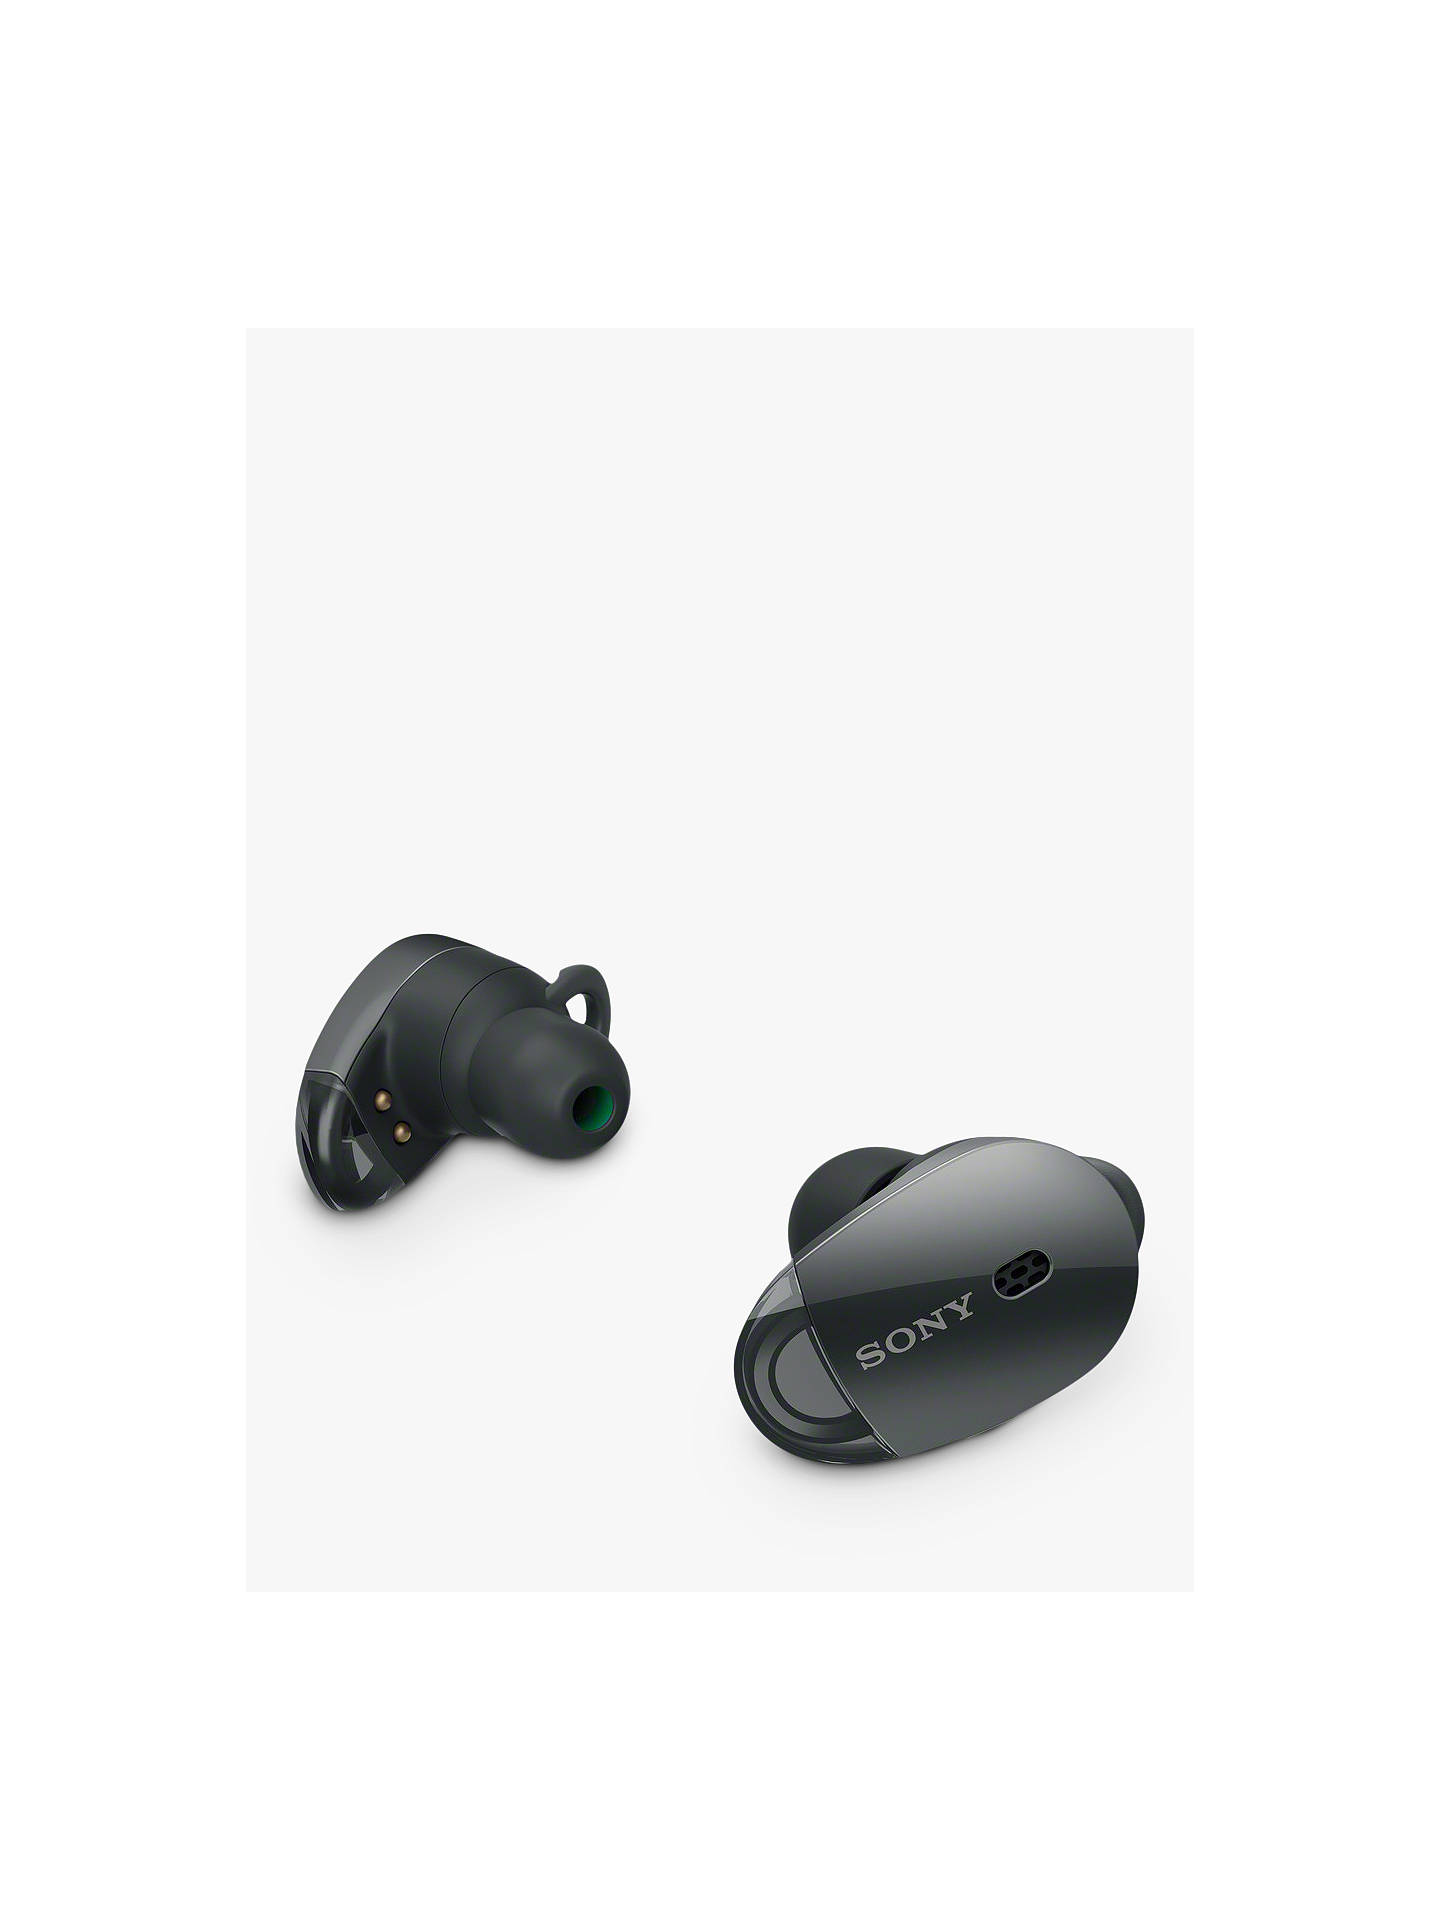 BuySony WF-1000X Noise Cancelling True Wireless Bluetooth NFC In-Ear Headphones with Mic/Remote, Black Online at johnlewis.com